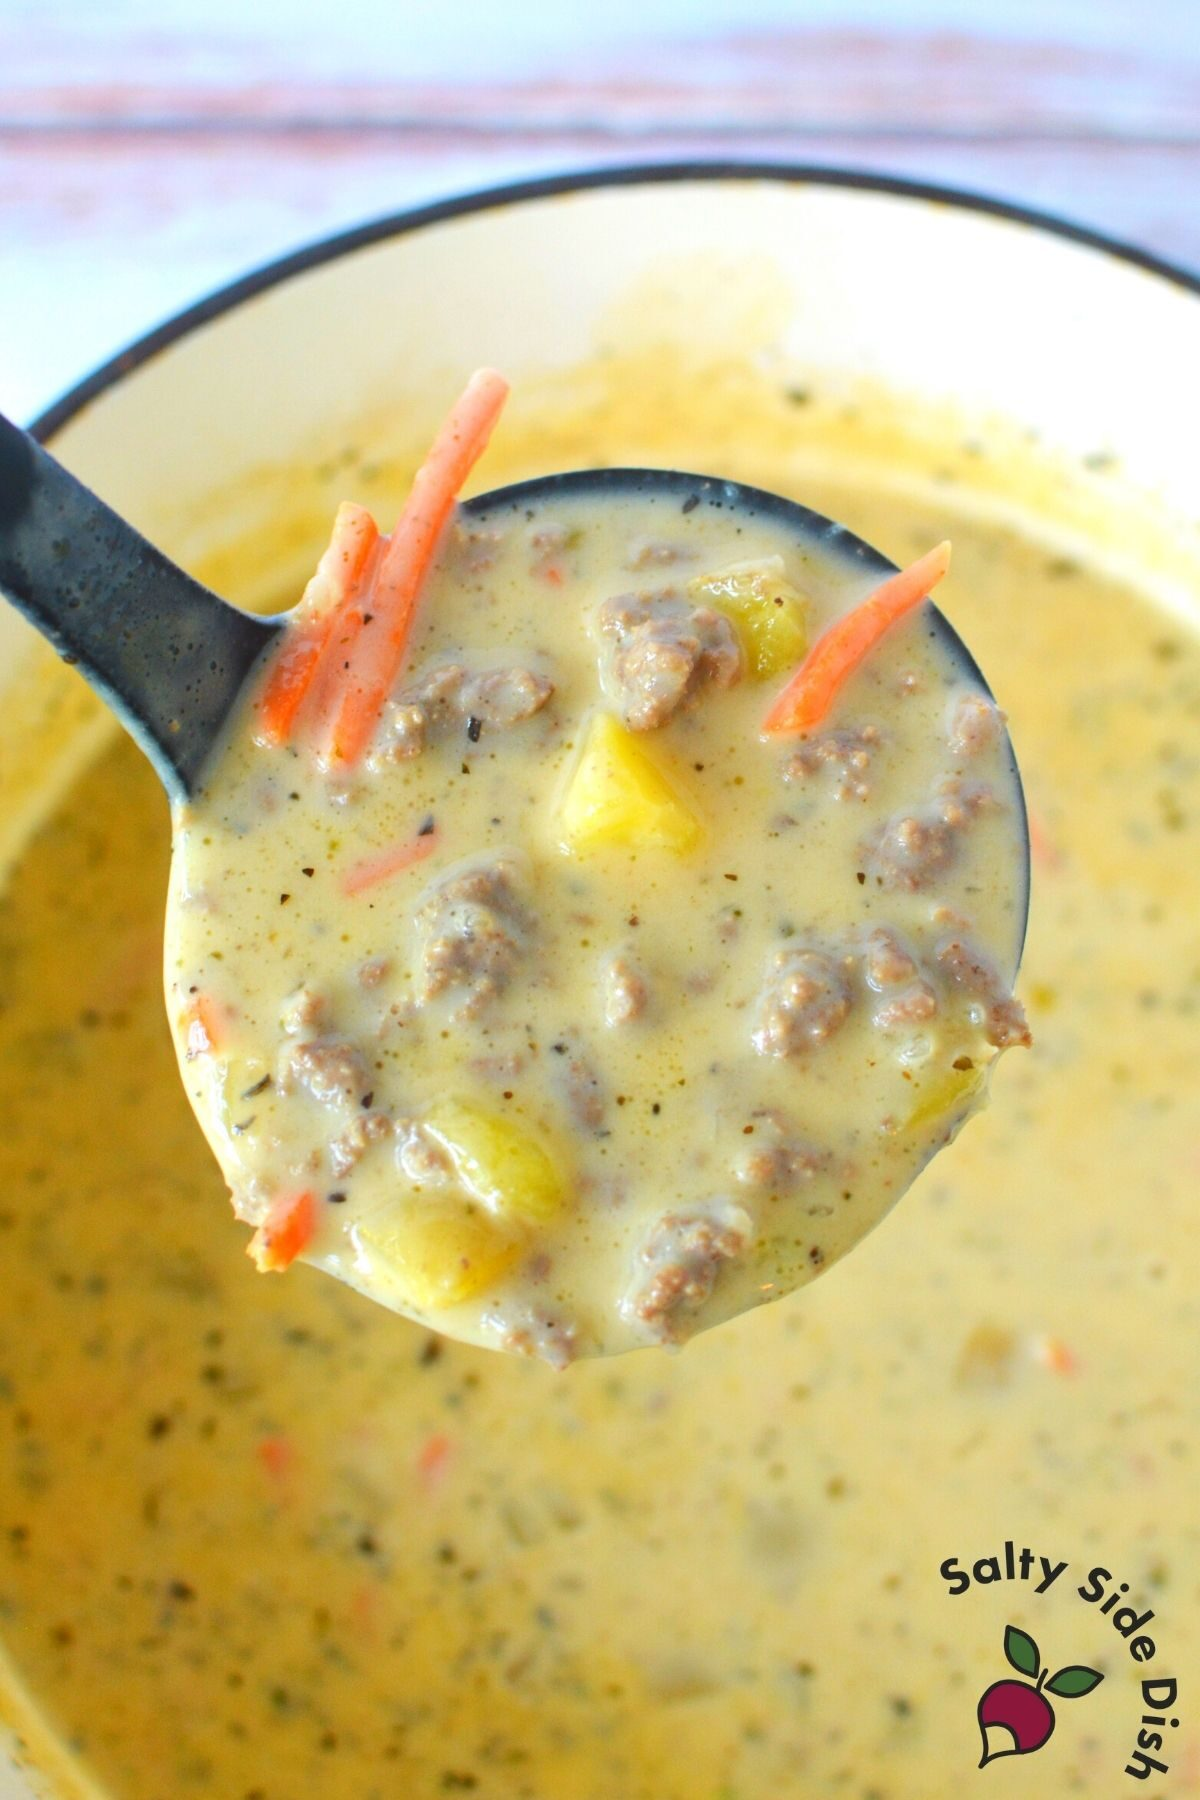 ladle dipping out a large scoop of creamy hamburger soup.